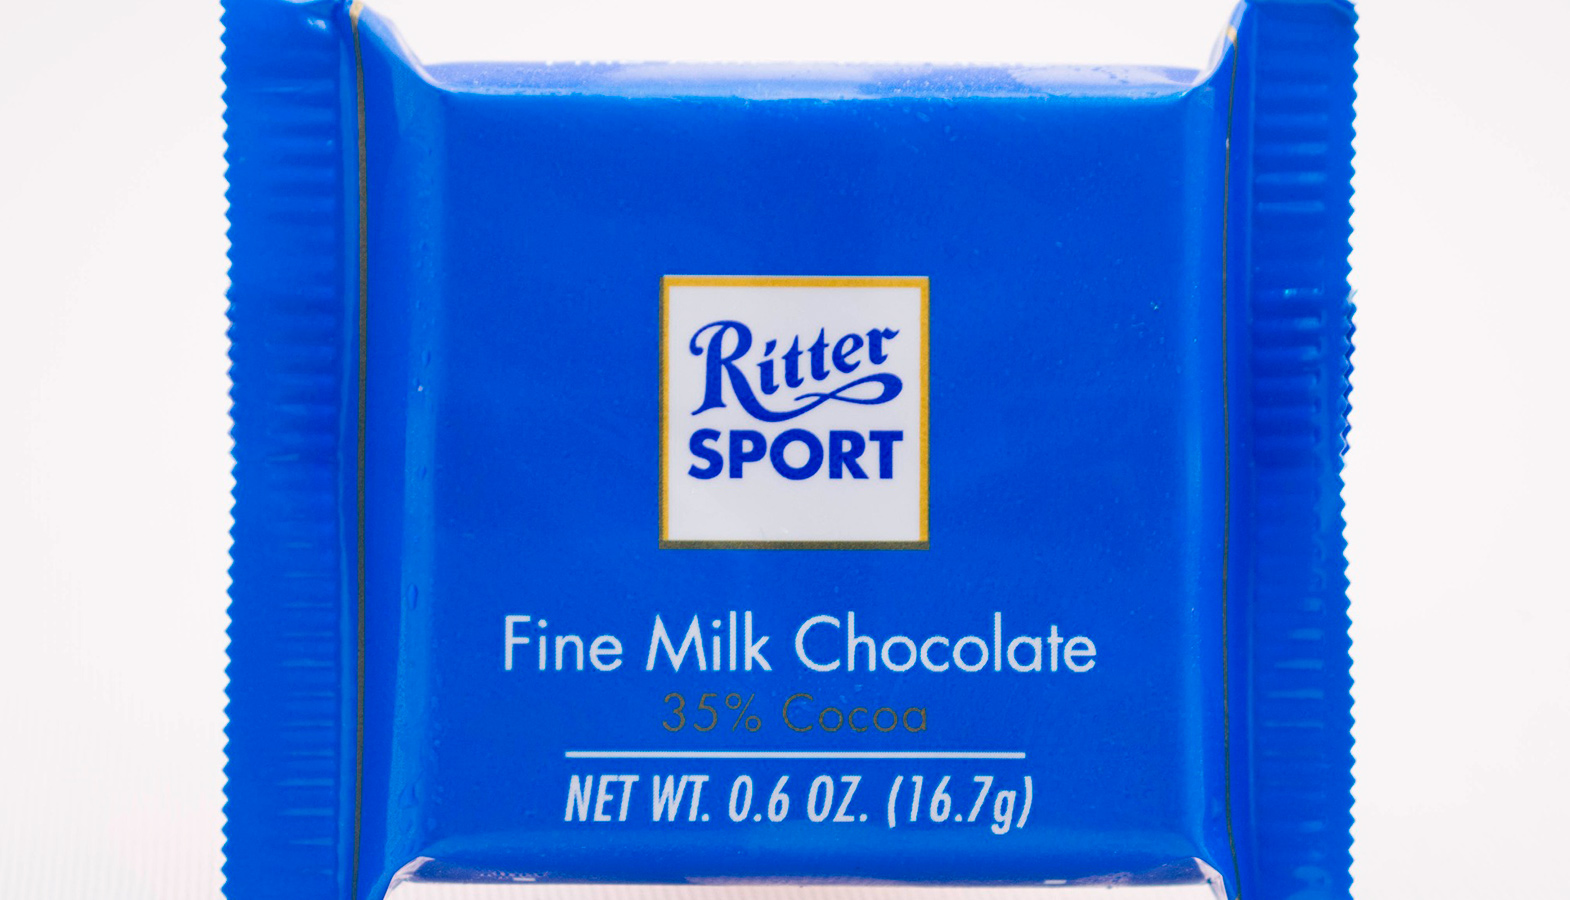 A Court In Germany Confirmed The Exclusive Right Of Ritter Sport To The Square Shape Of Chocolate